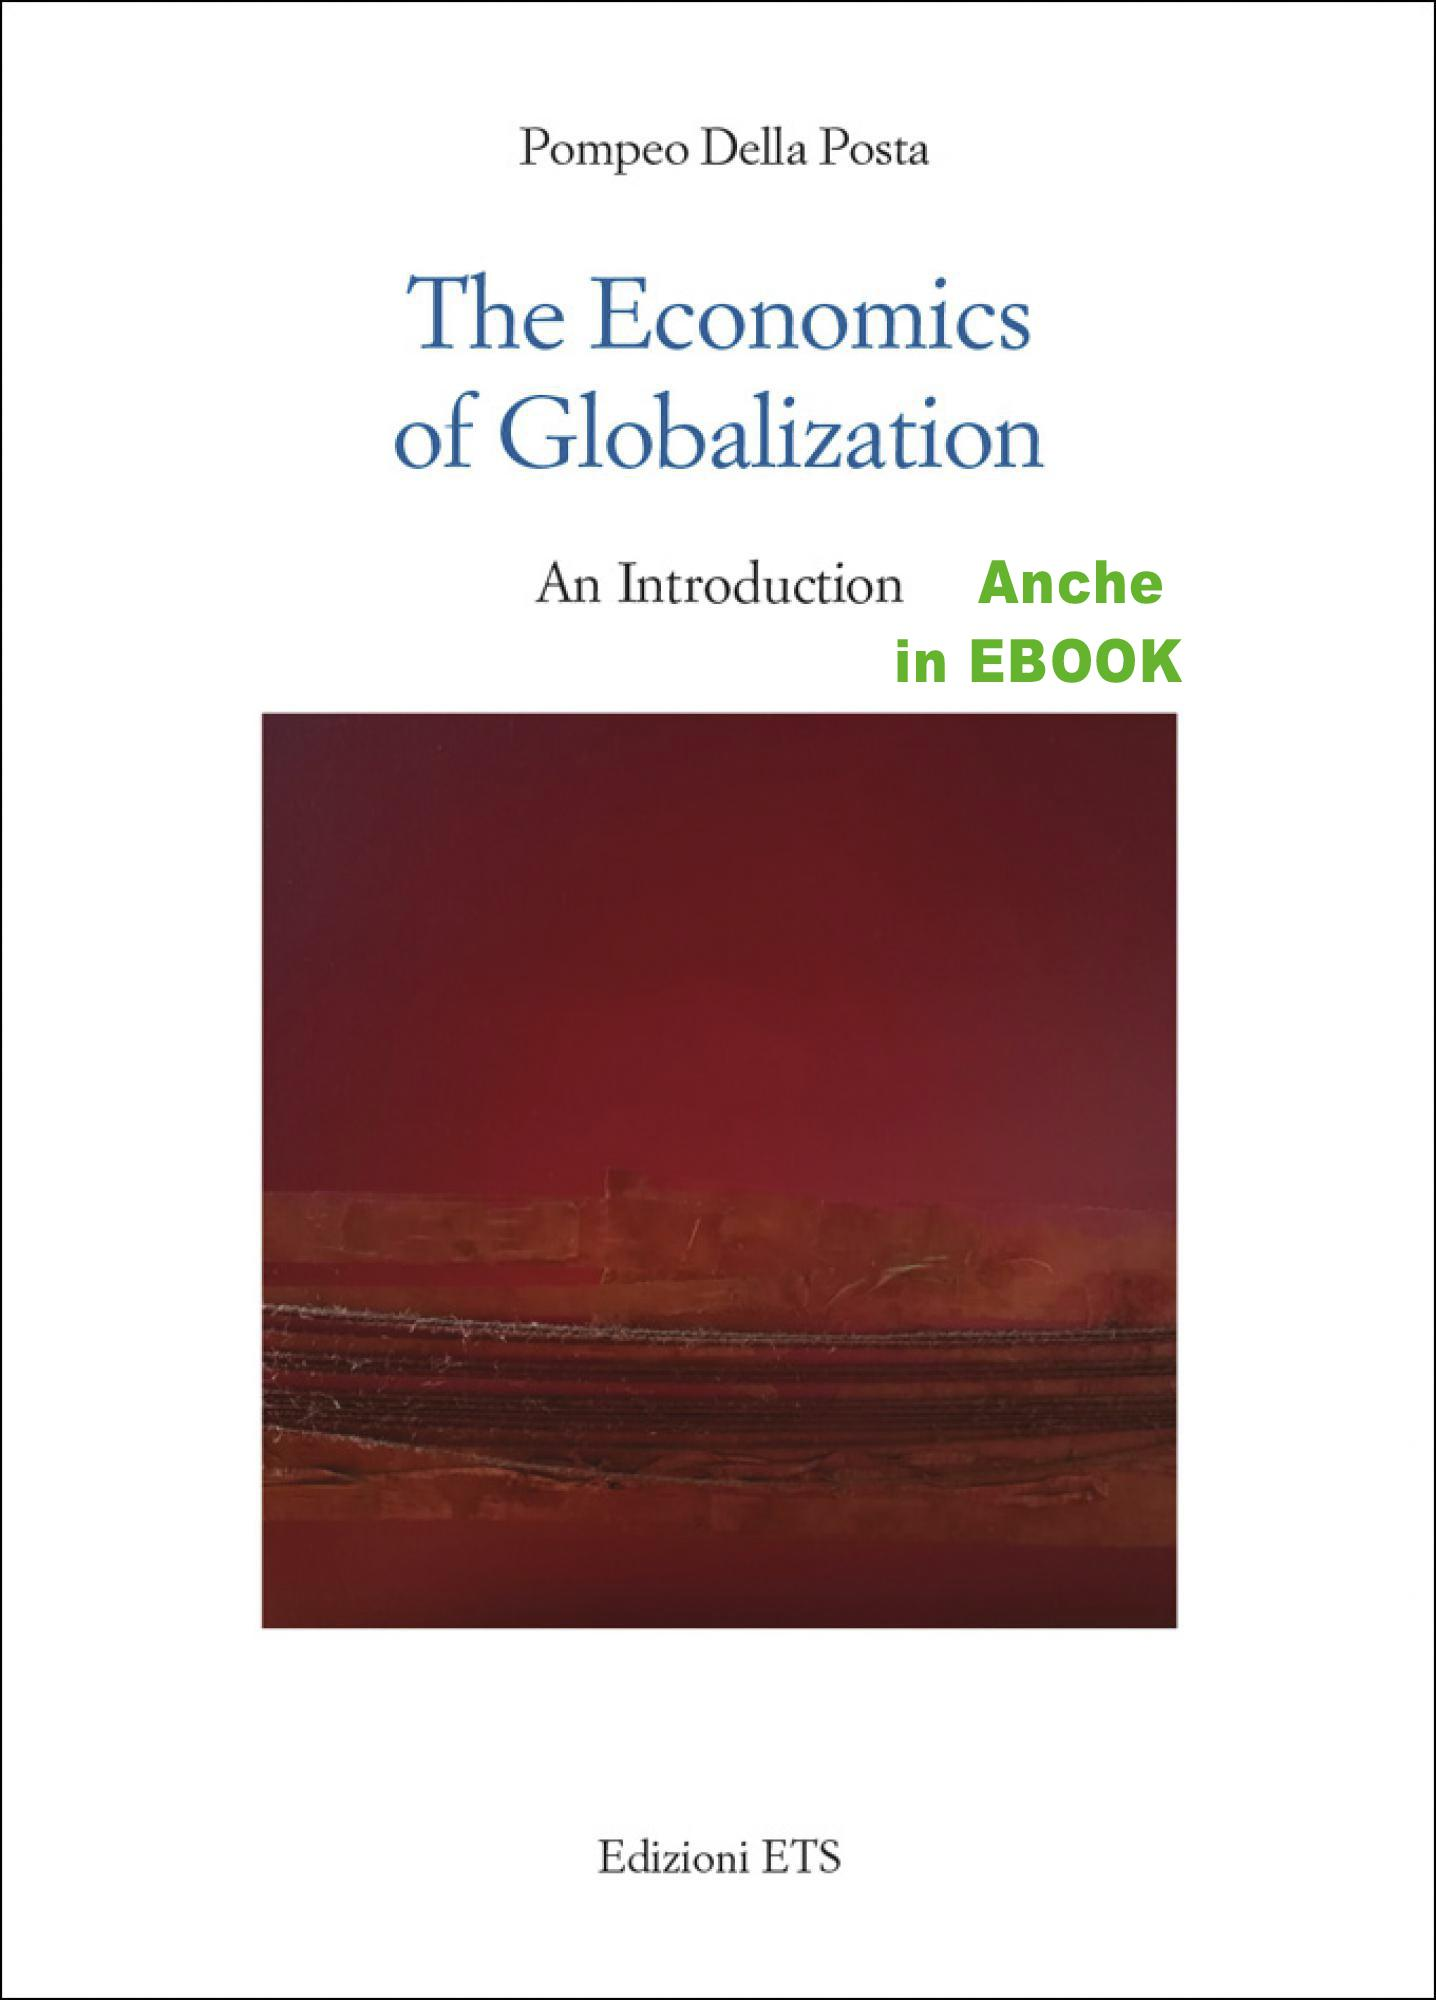 The Economics of Globalization.